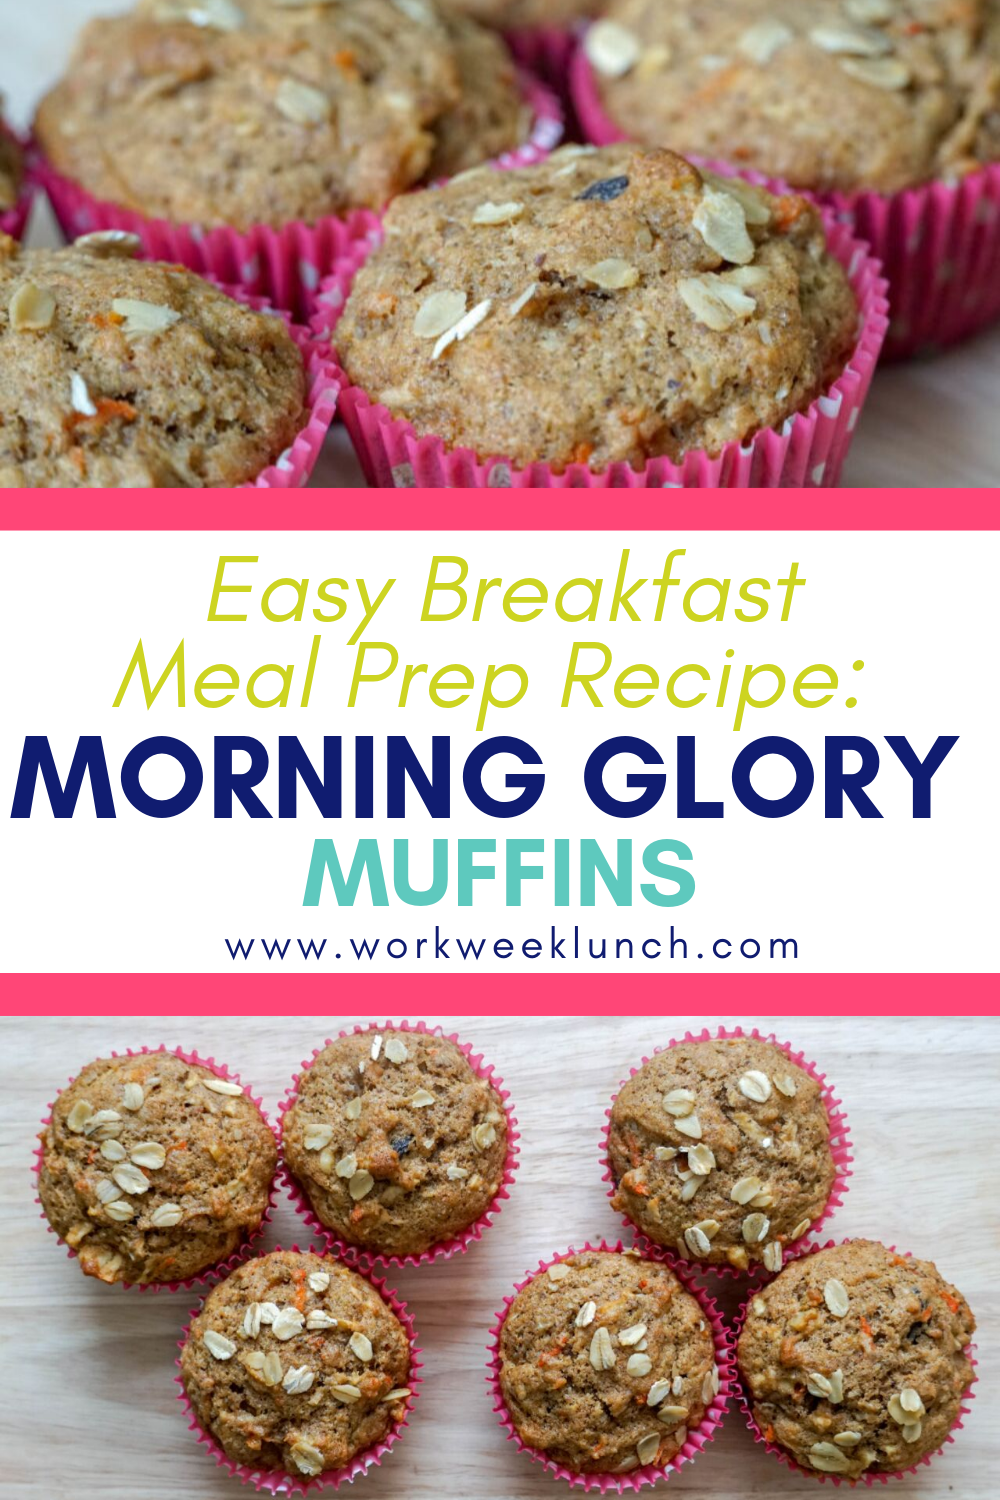 Easy-Breakfast-Recipe-Breakfast-Meal-Prep-Recipe-Morning-Glory-Muffins